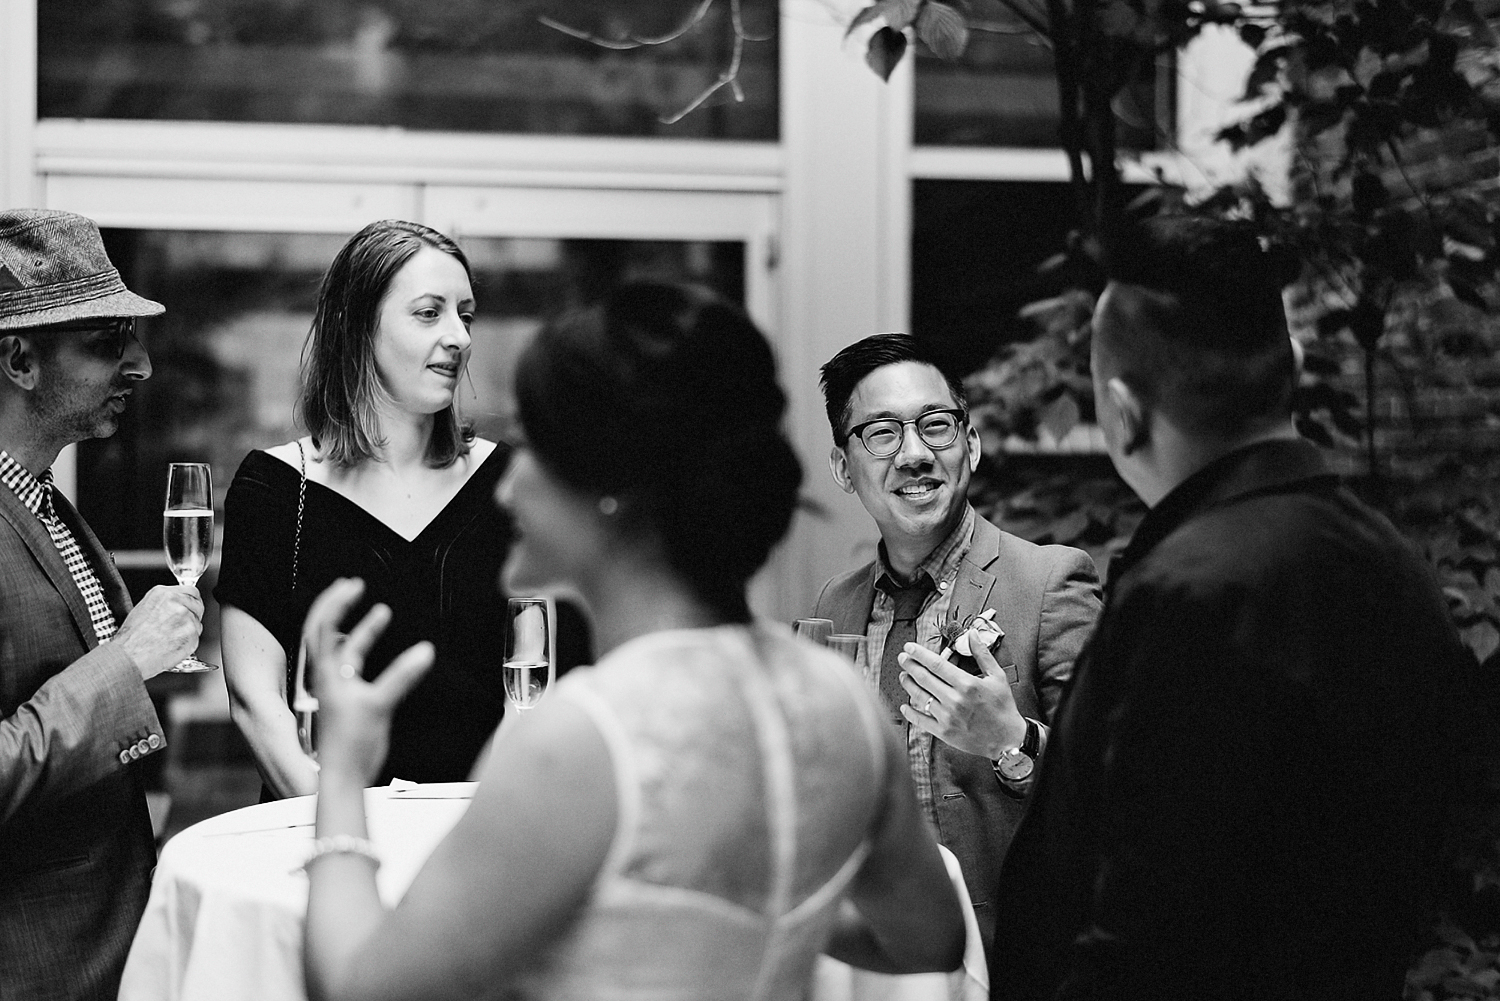 Best-Toronto-Wedding-Photographers_High-Park-Wedding_The-Lodge-Wedding_George-Restaurant-Reception_Analog-Film_Intimate-Candid-Photography_Guests-Detail_Outdoor-Summer-Wedding-Toronto_Casual-Restaurant-Wedding-candid-Groom-Conversation.jpg